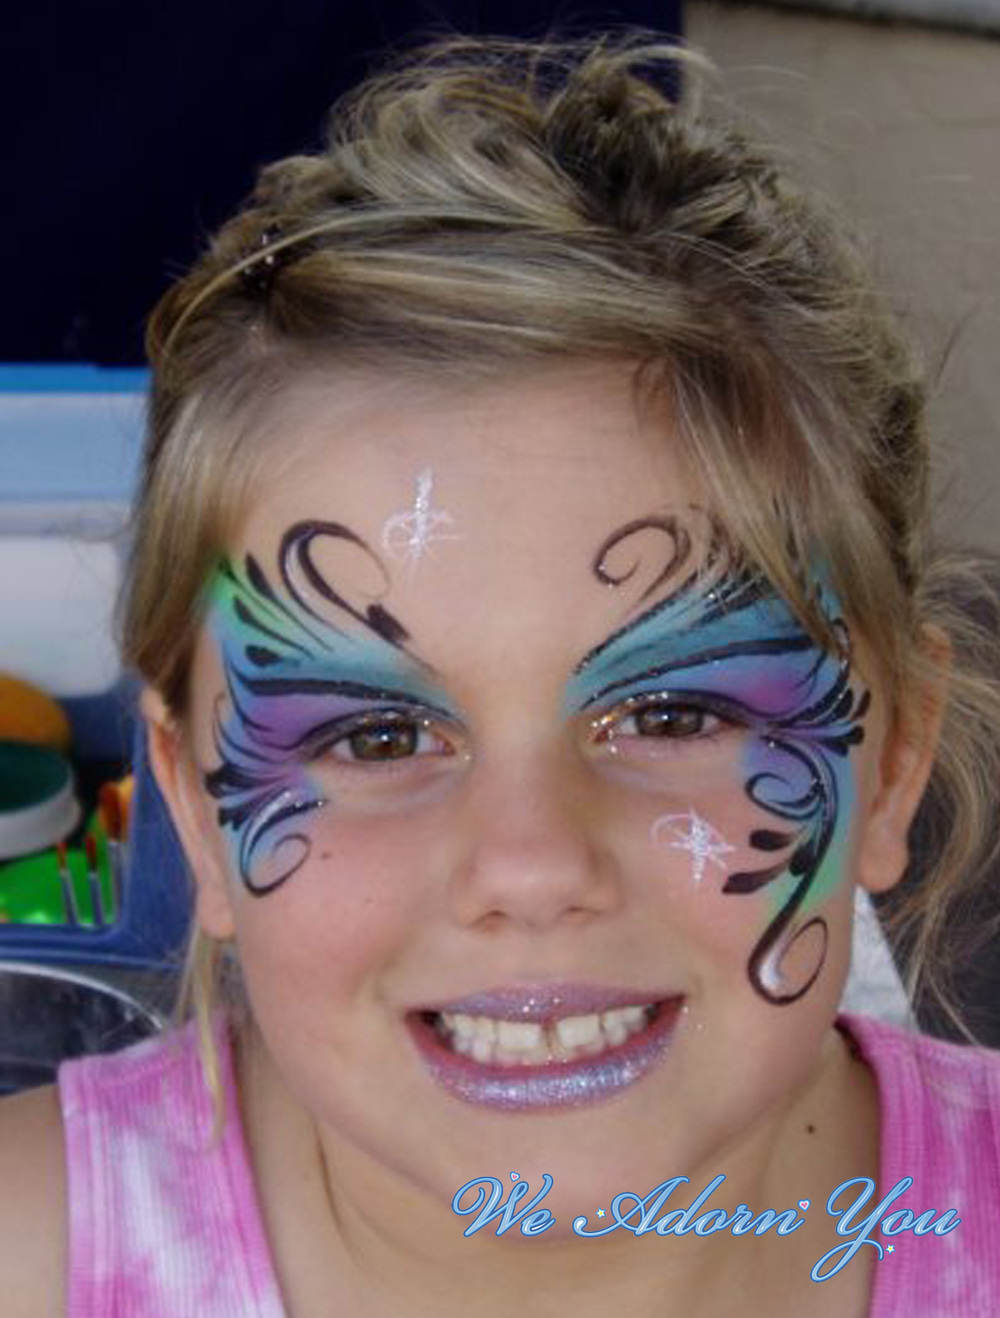 Face Painting Eye Design - We Adorn You.jpg